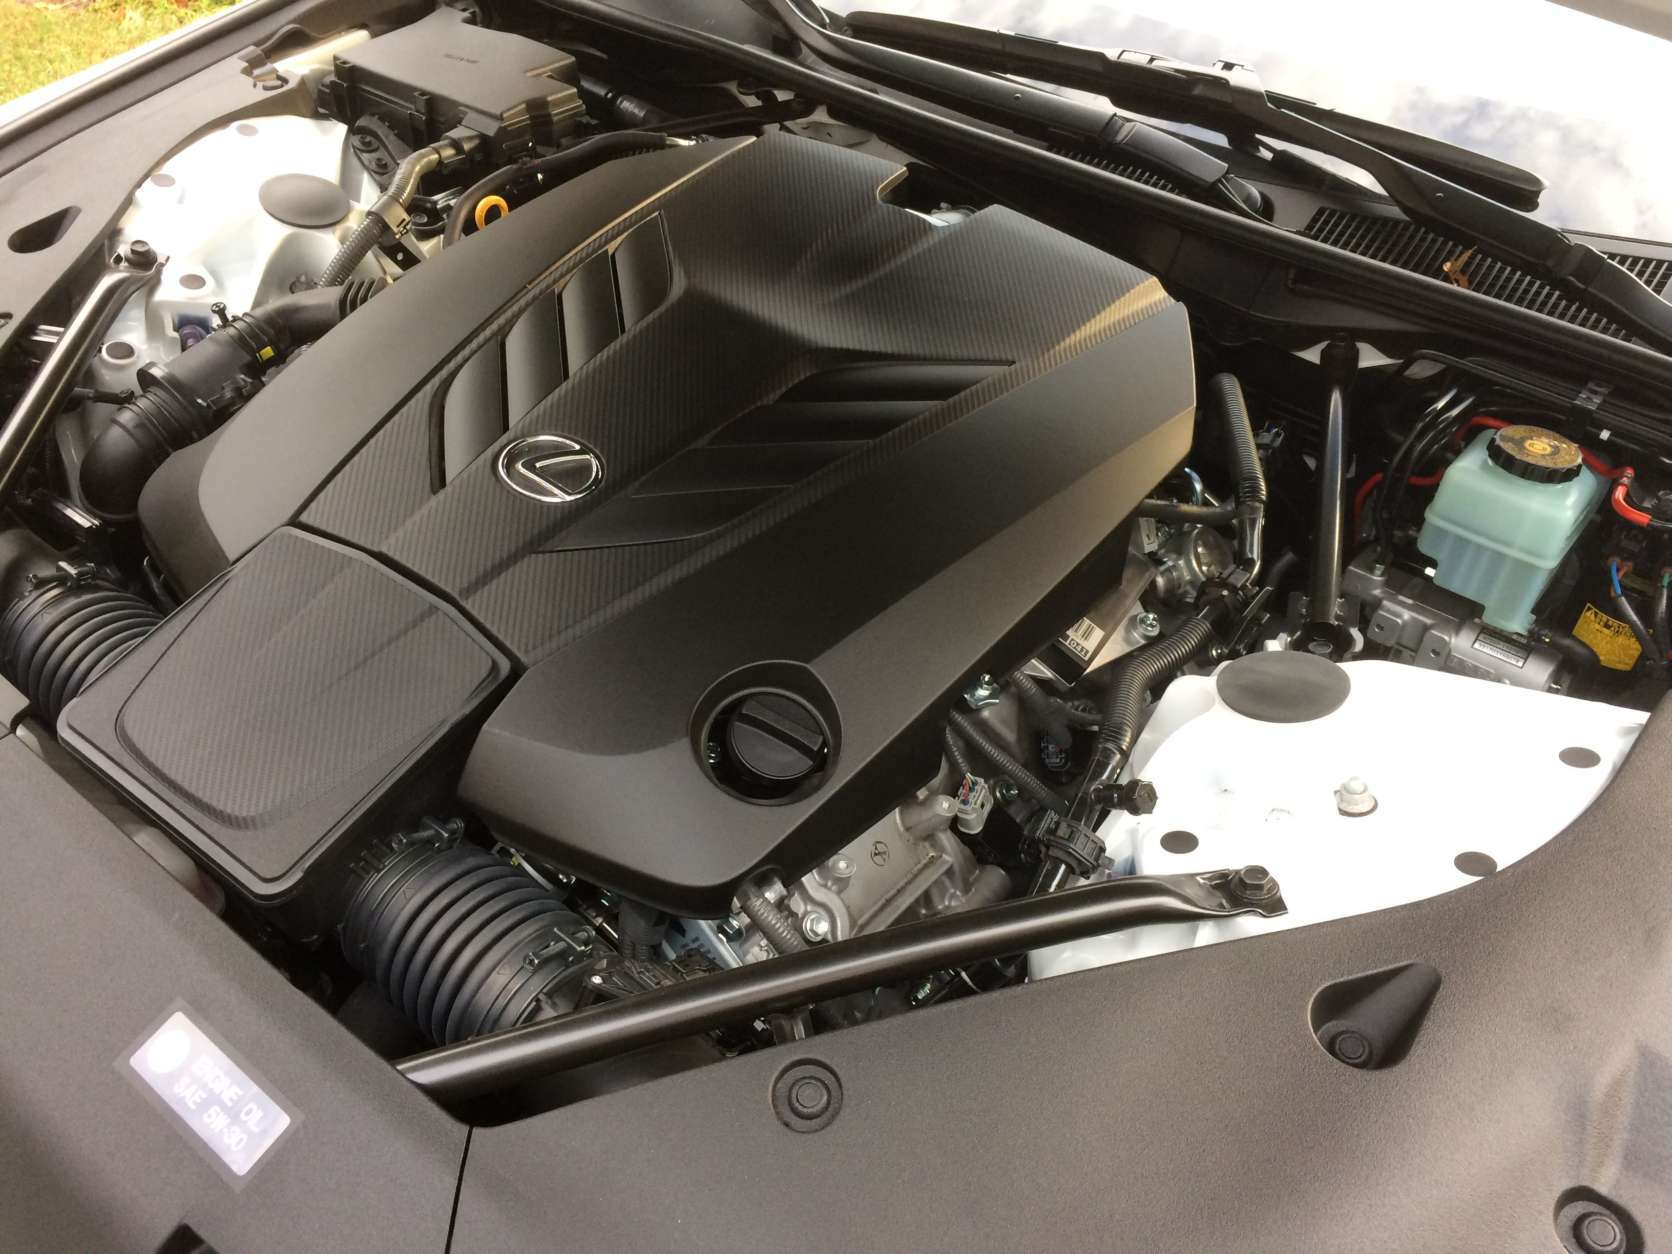 The 5 liter V-8 is a rare engine today as there are no turbos or superchargers. (WTOP/Mike Parris)